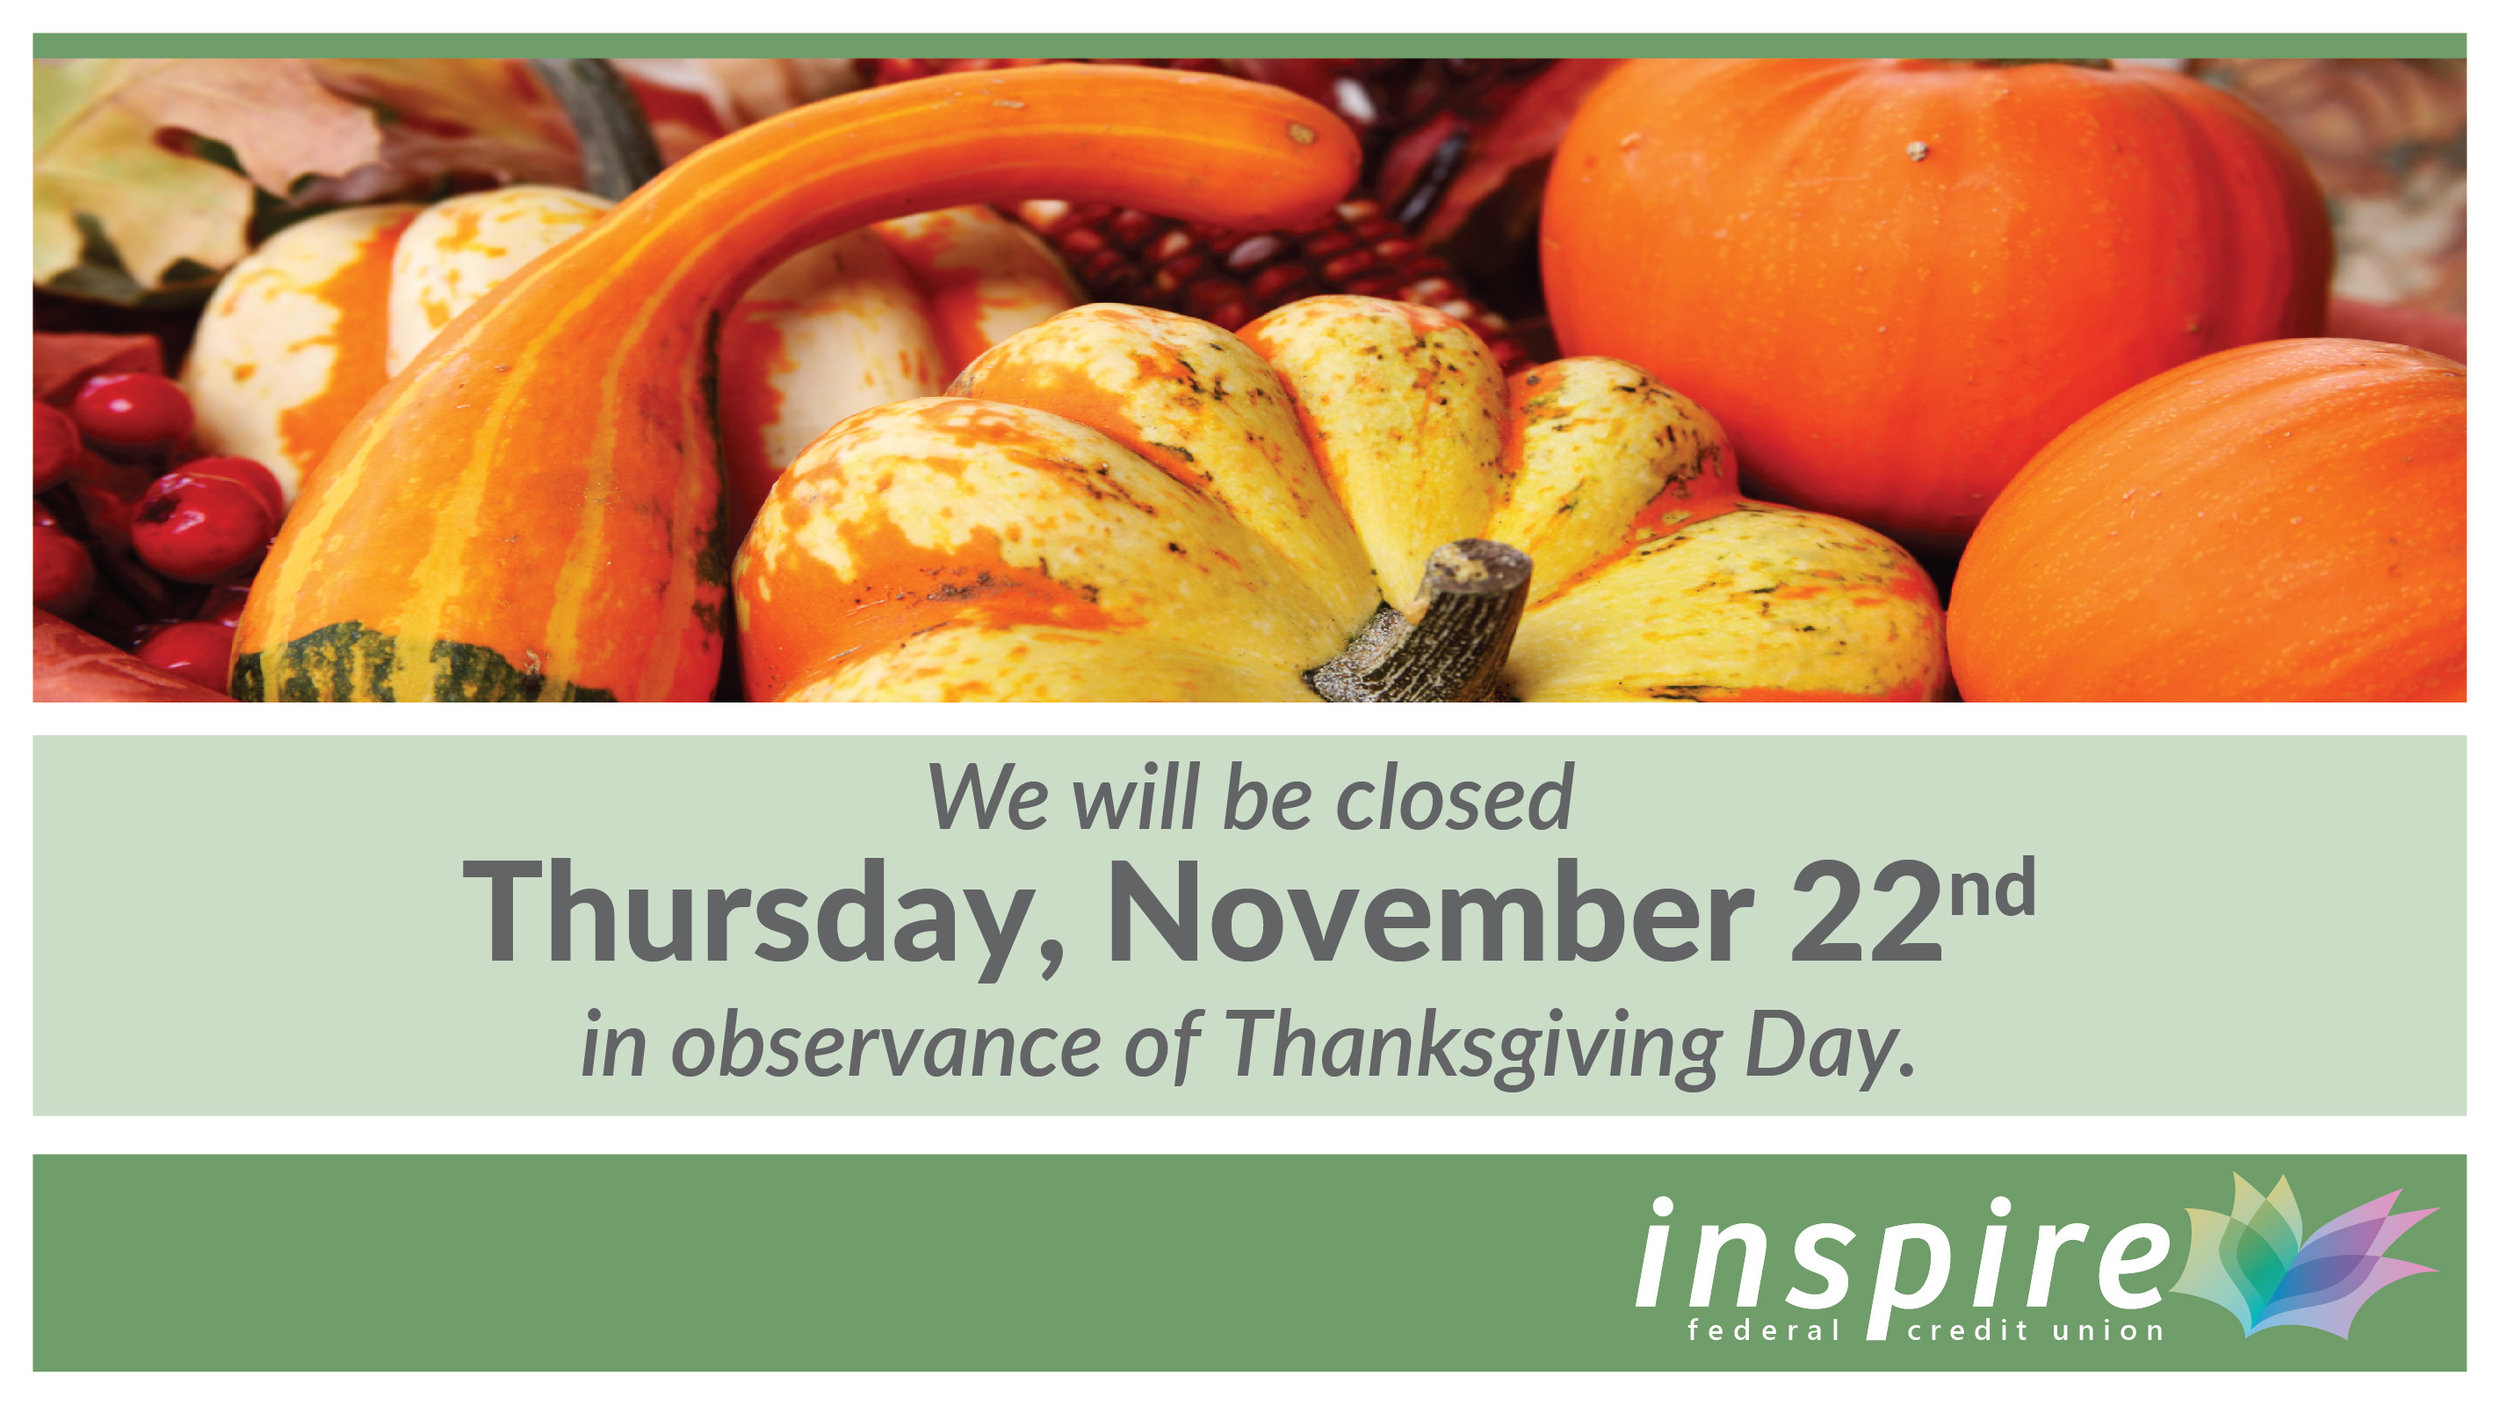 We will be closed on November 22, 2018 in observance of Thanksgiving Day.    Please use    online banking    or our    mobile app    to monitor your accounts during this time.